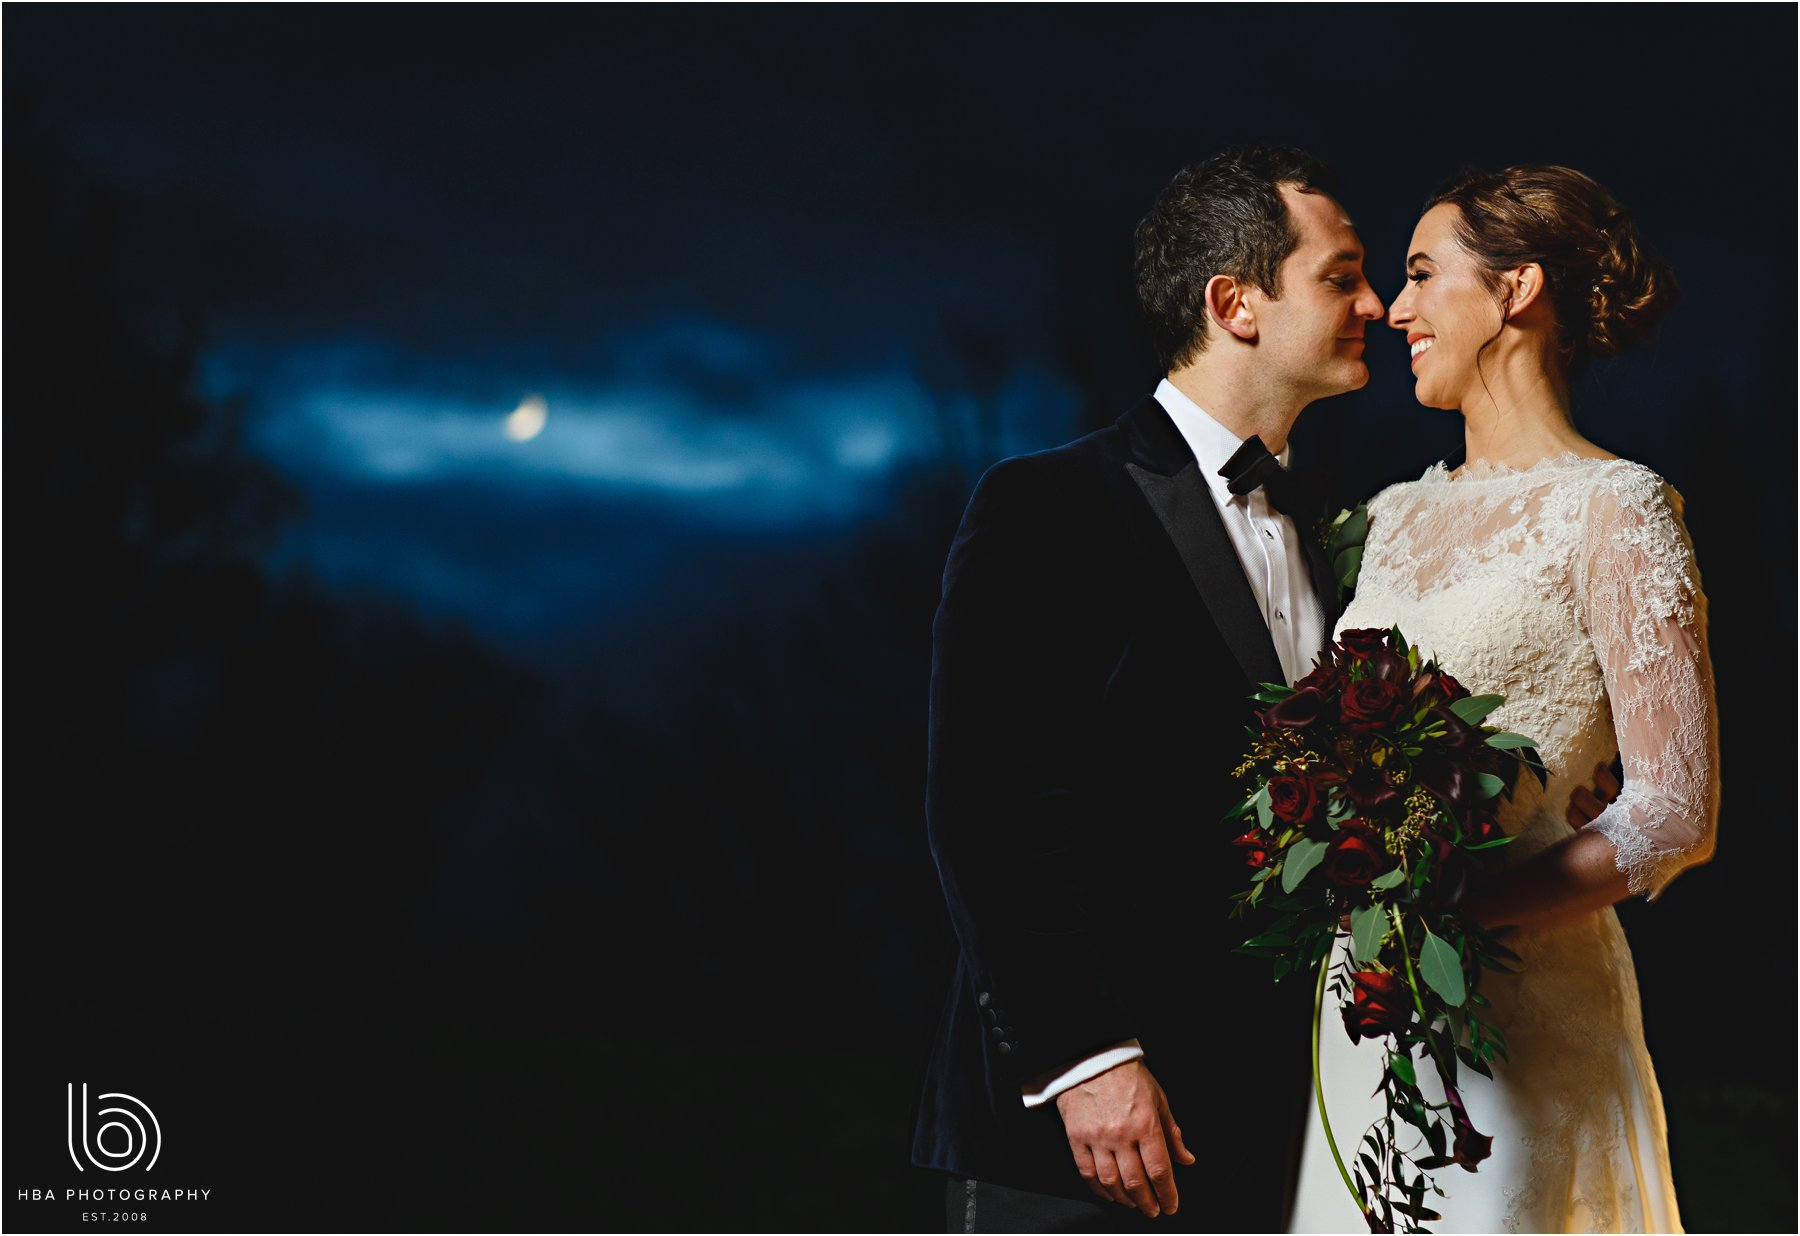 the bride and groom in the moonlight